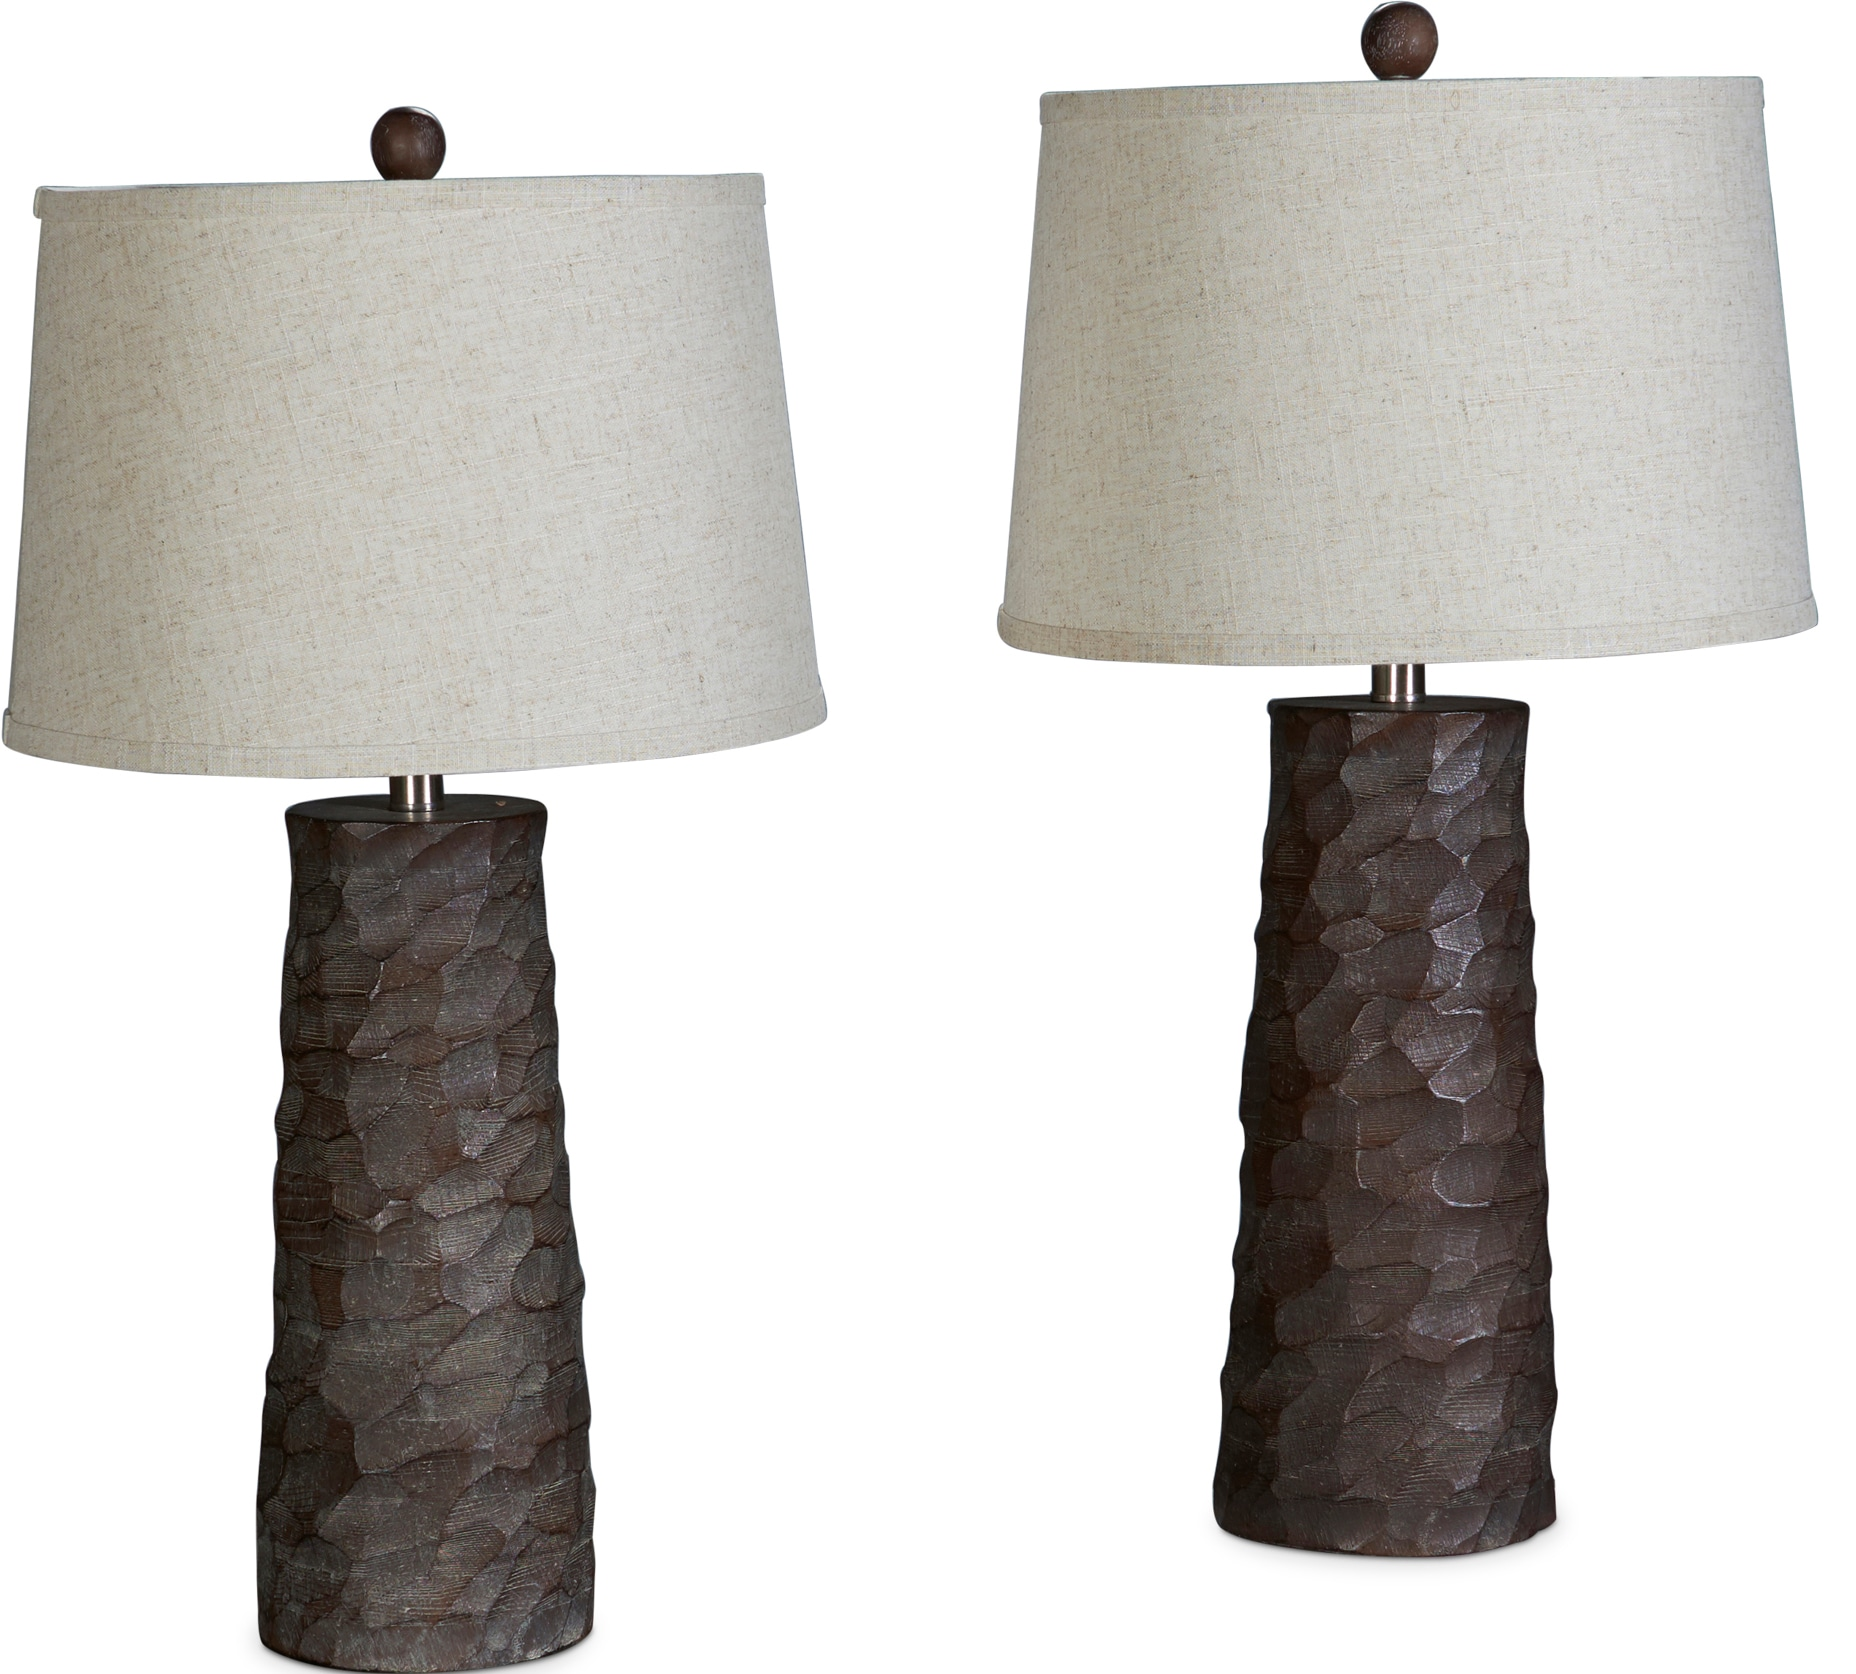 Table Lamps - Faux Wood